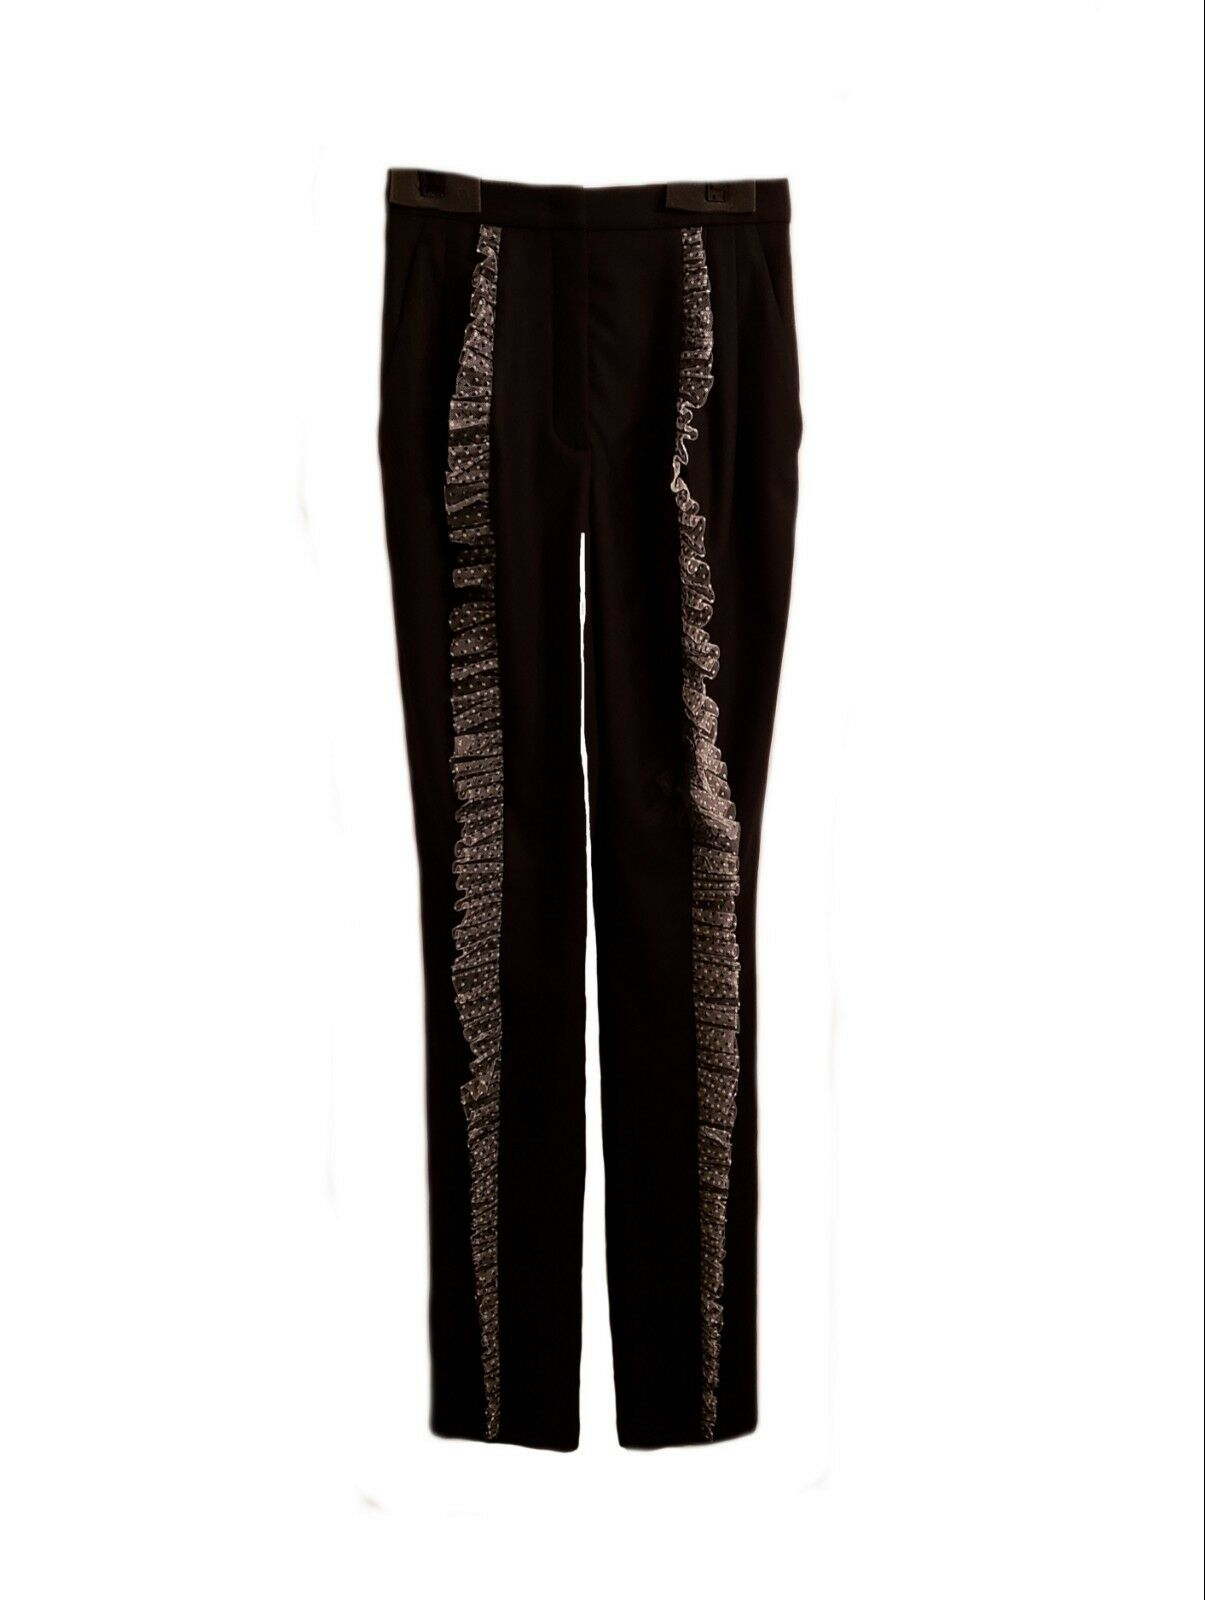 Roberto Cavalli Women's Wool Trousers Pants with Polka Dot Ruffle Tulle Trim